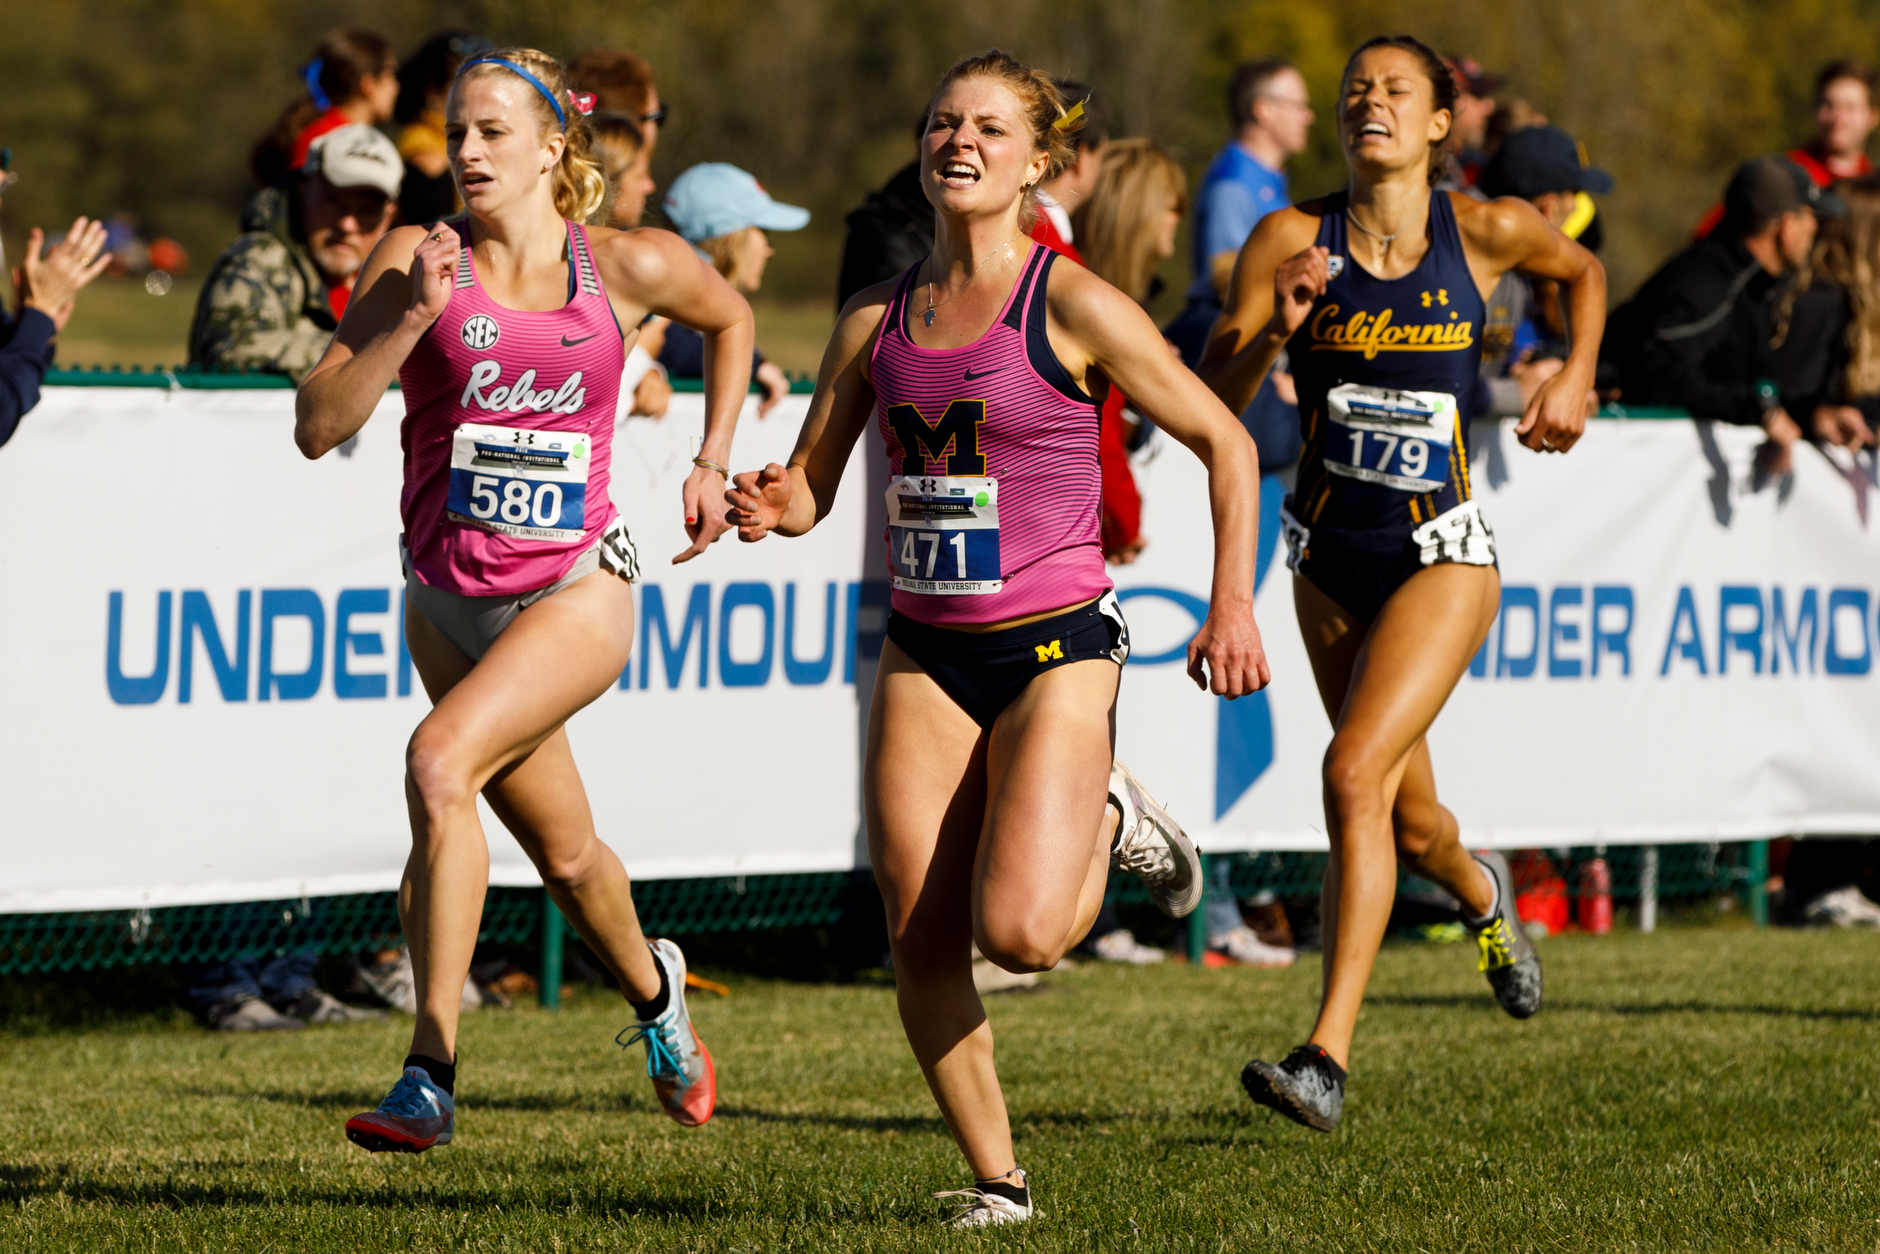 Michigan's Maddy Trevisan (471) competes during the Indiana State Pre-National Cross Country Invitational in Terre Haute, Indiana on Saturday, Oct. 19, 2019. (Photo by James Brosher)